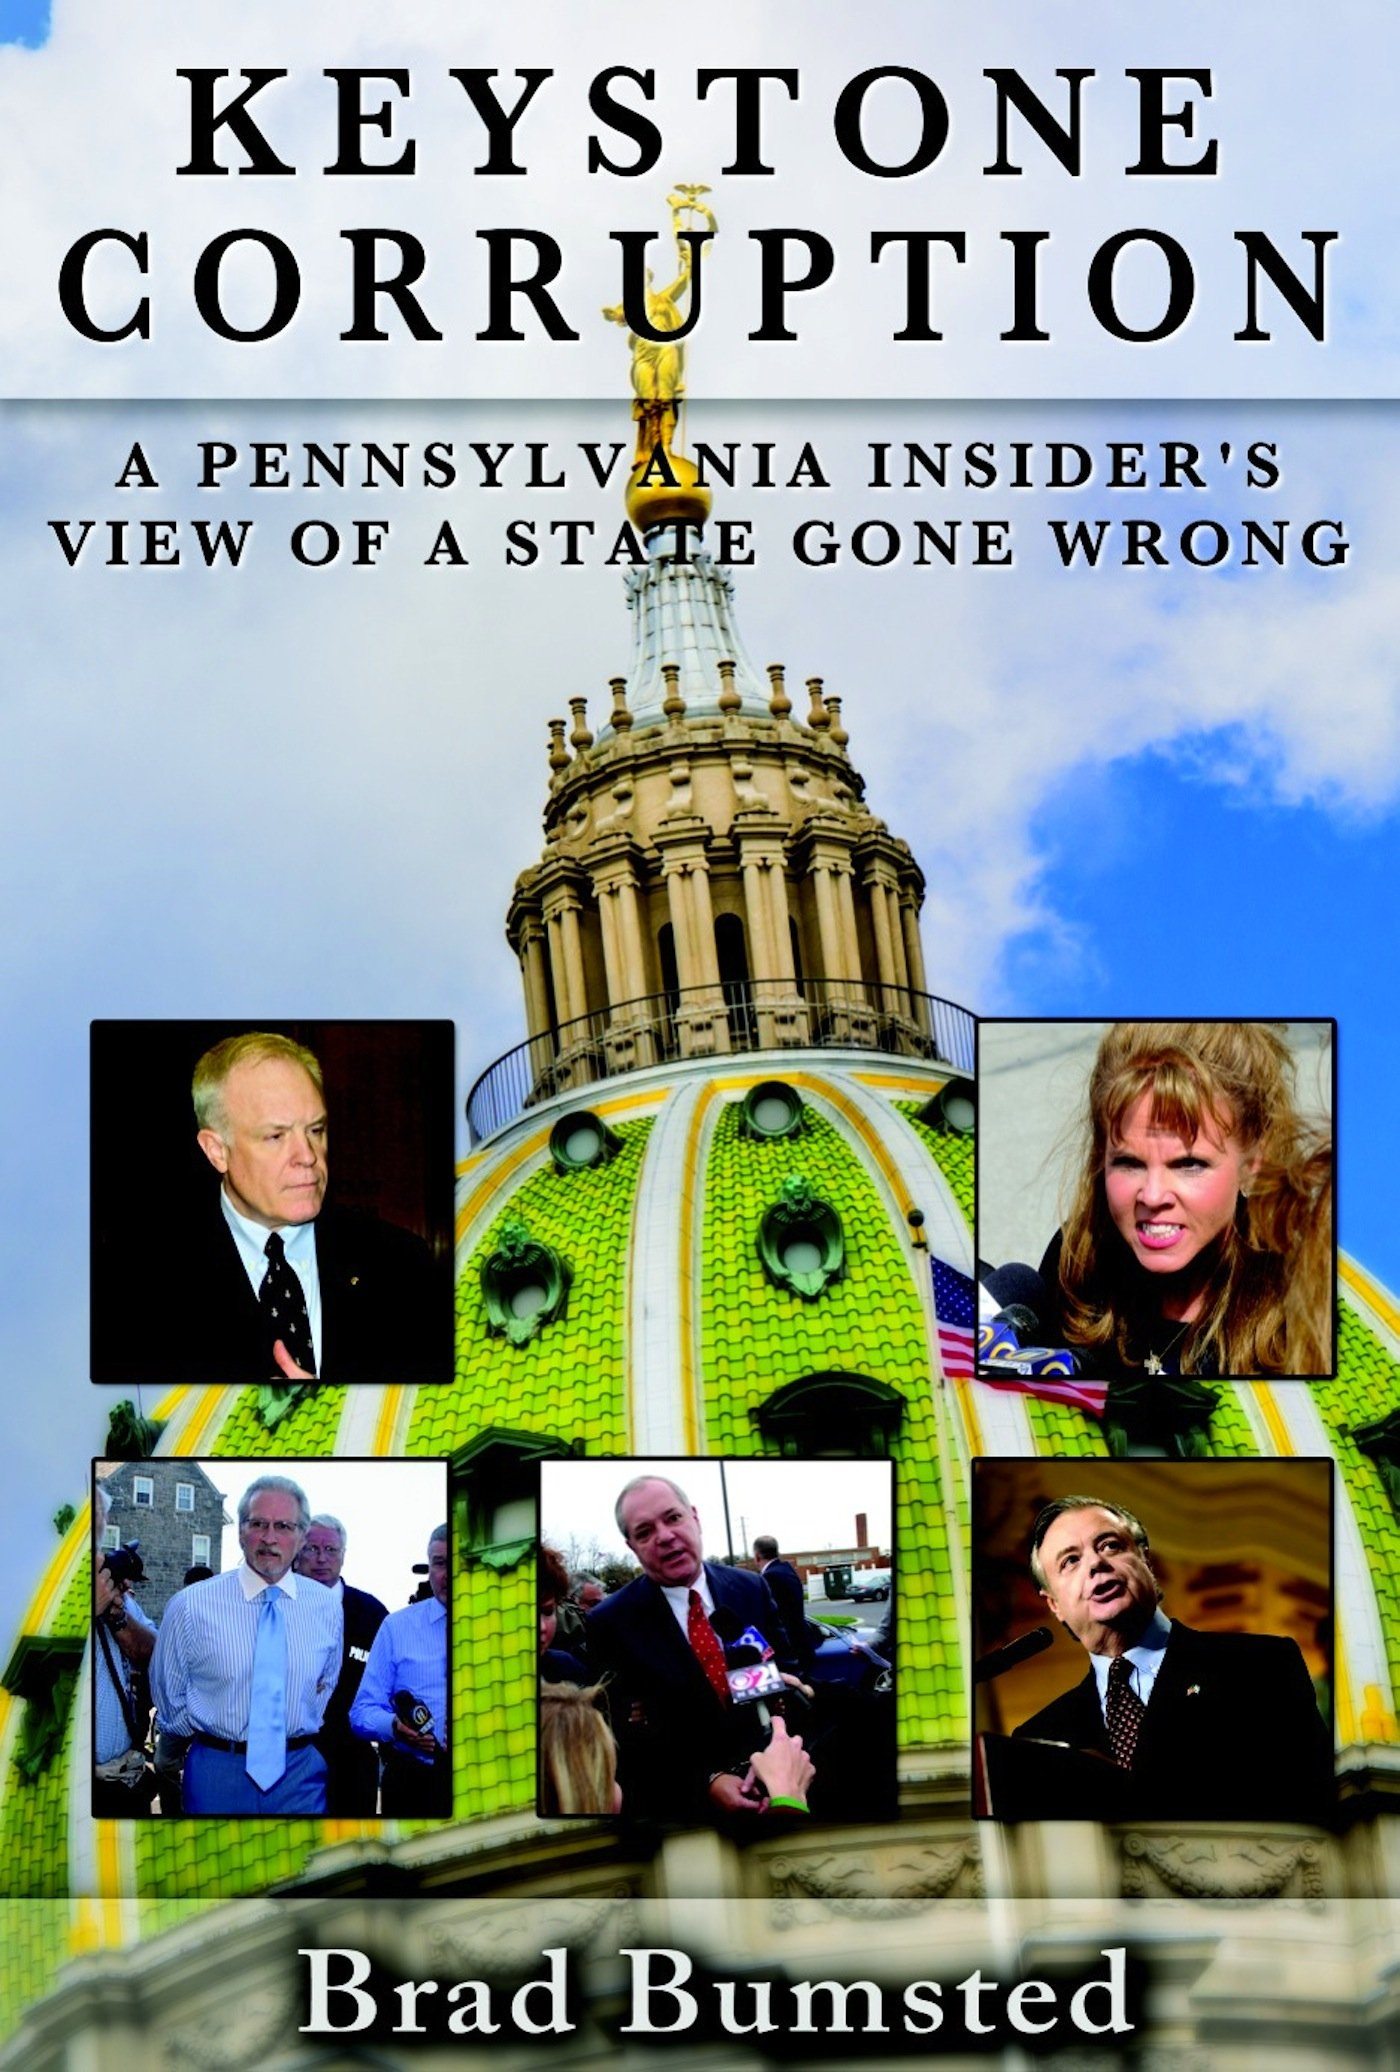 A Pennsylvania Insider's View of a State Gone Wrong